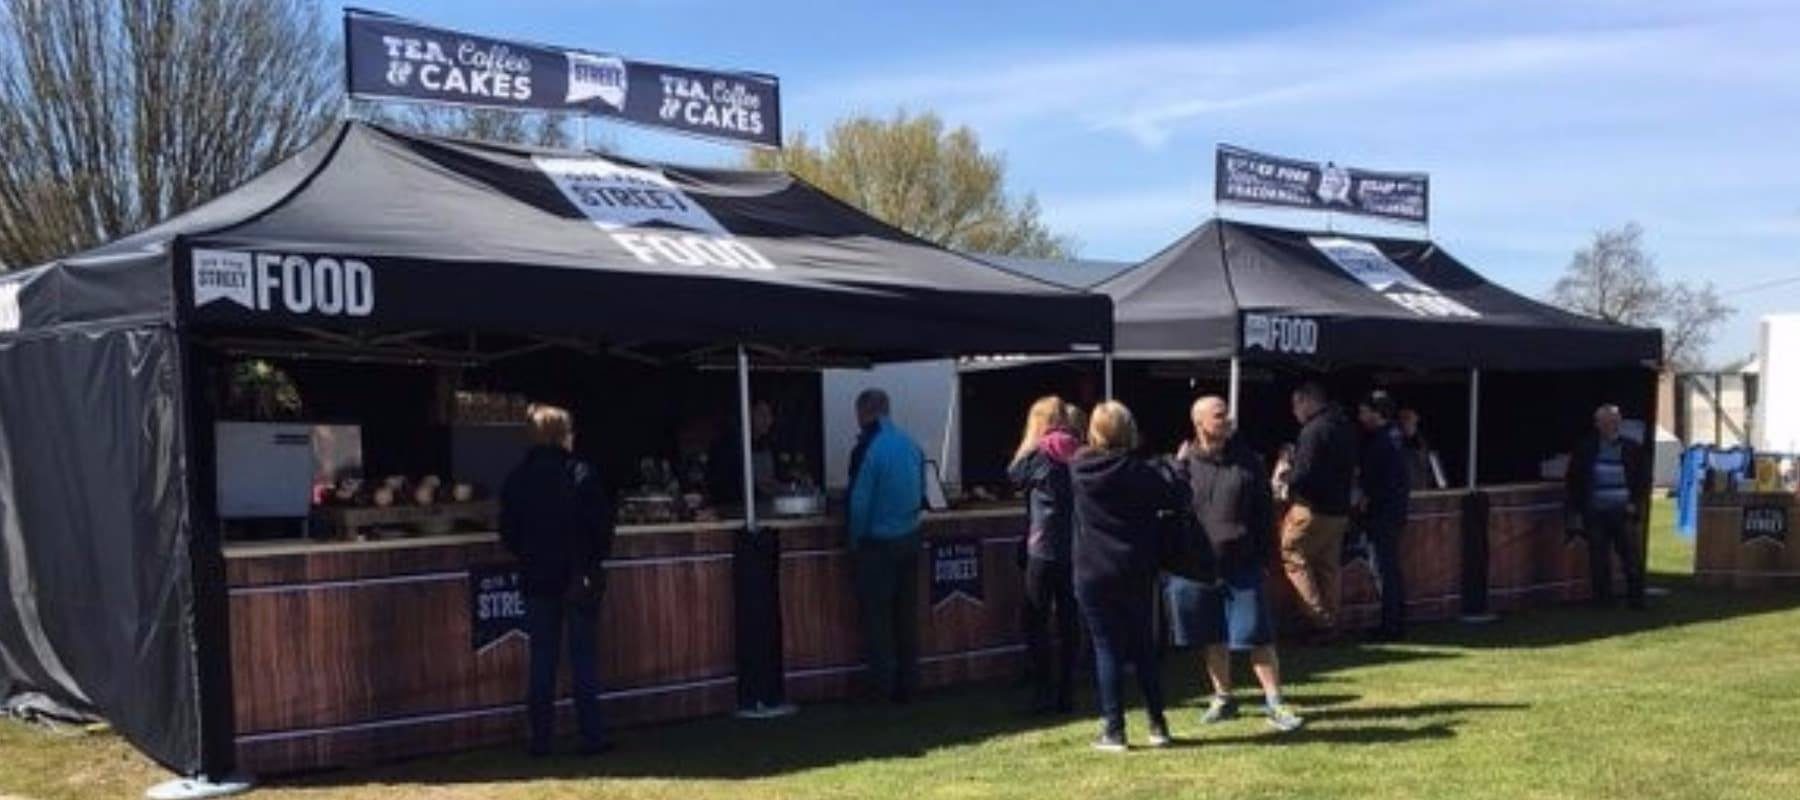 Growing your Street Food Business the right way